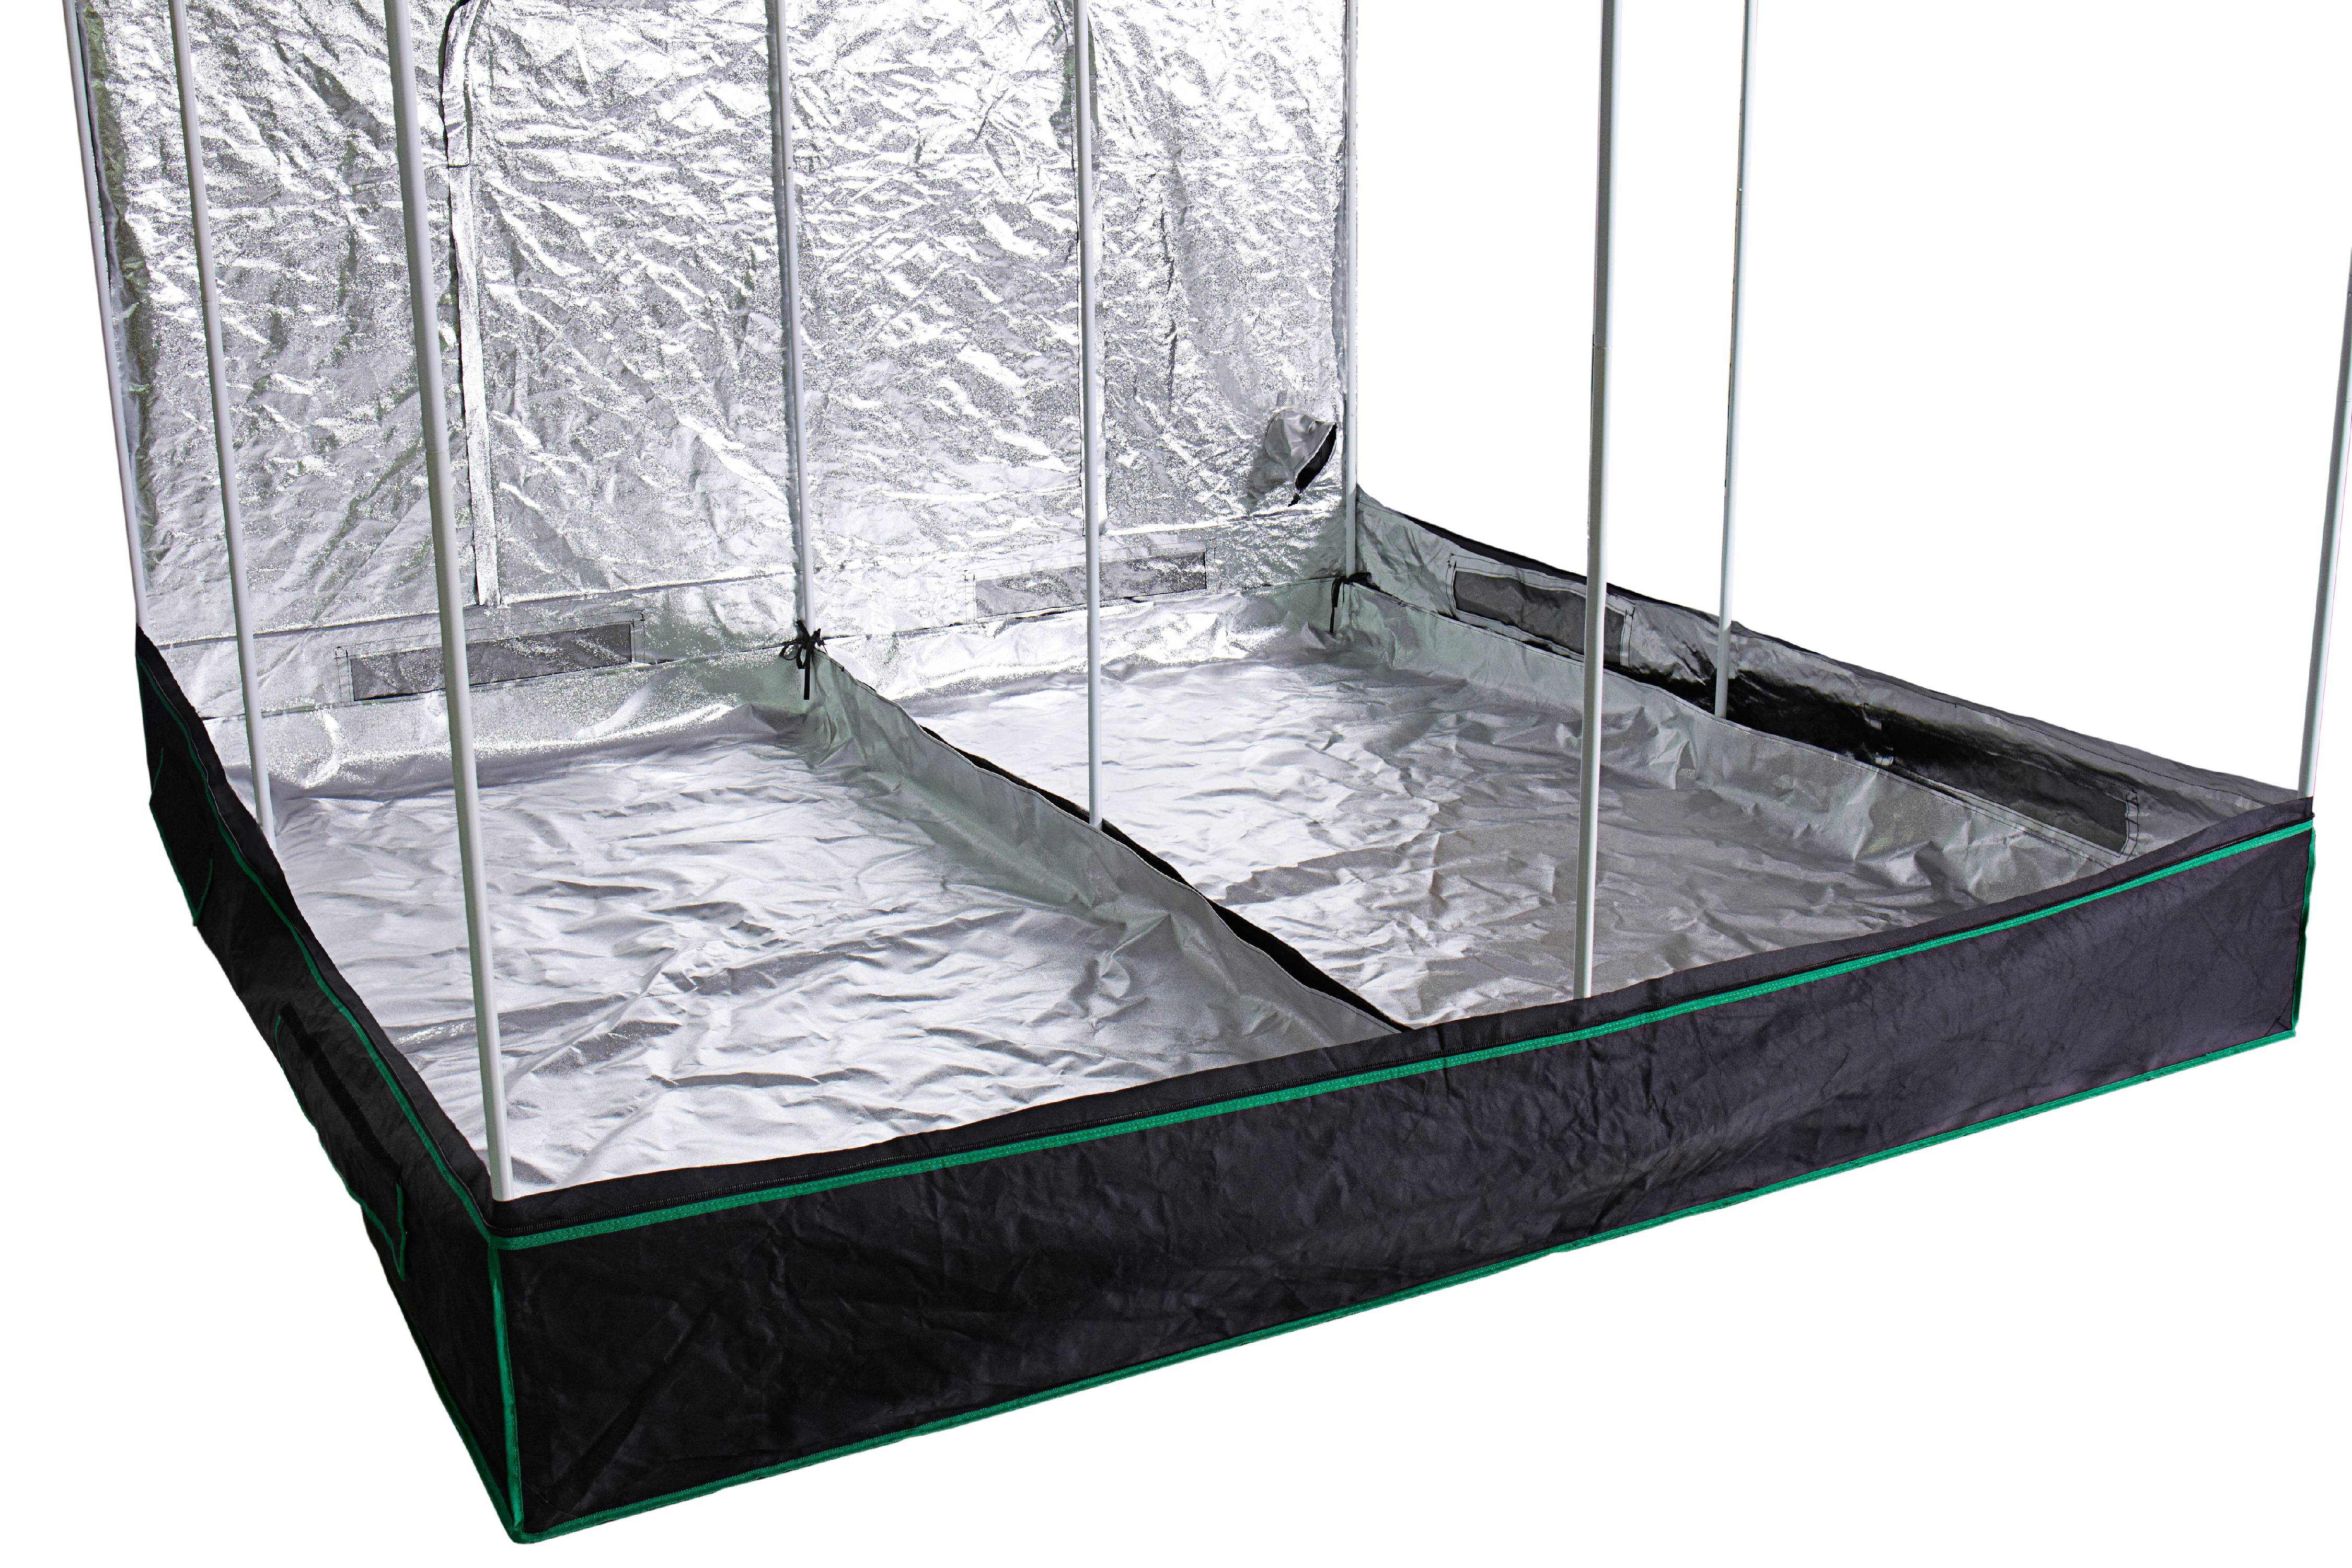 Hydro Crunch™ Heavy Duty Grow Room Tent 8 ft. x 8 ft. x  sc 1 st  Walmart & Hydro Crunch™ Heavy Duty Grow Room Tent 8 ft. x 8 ft. x 6.5 ft ...